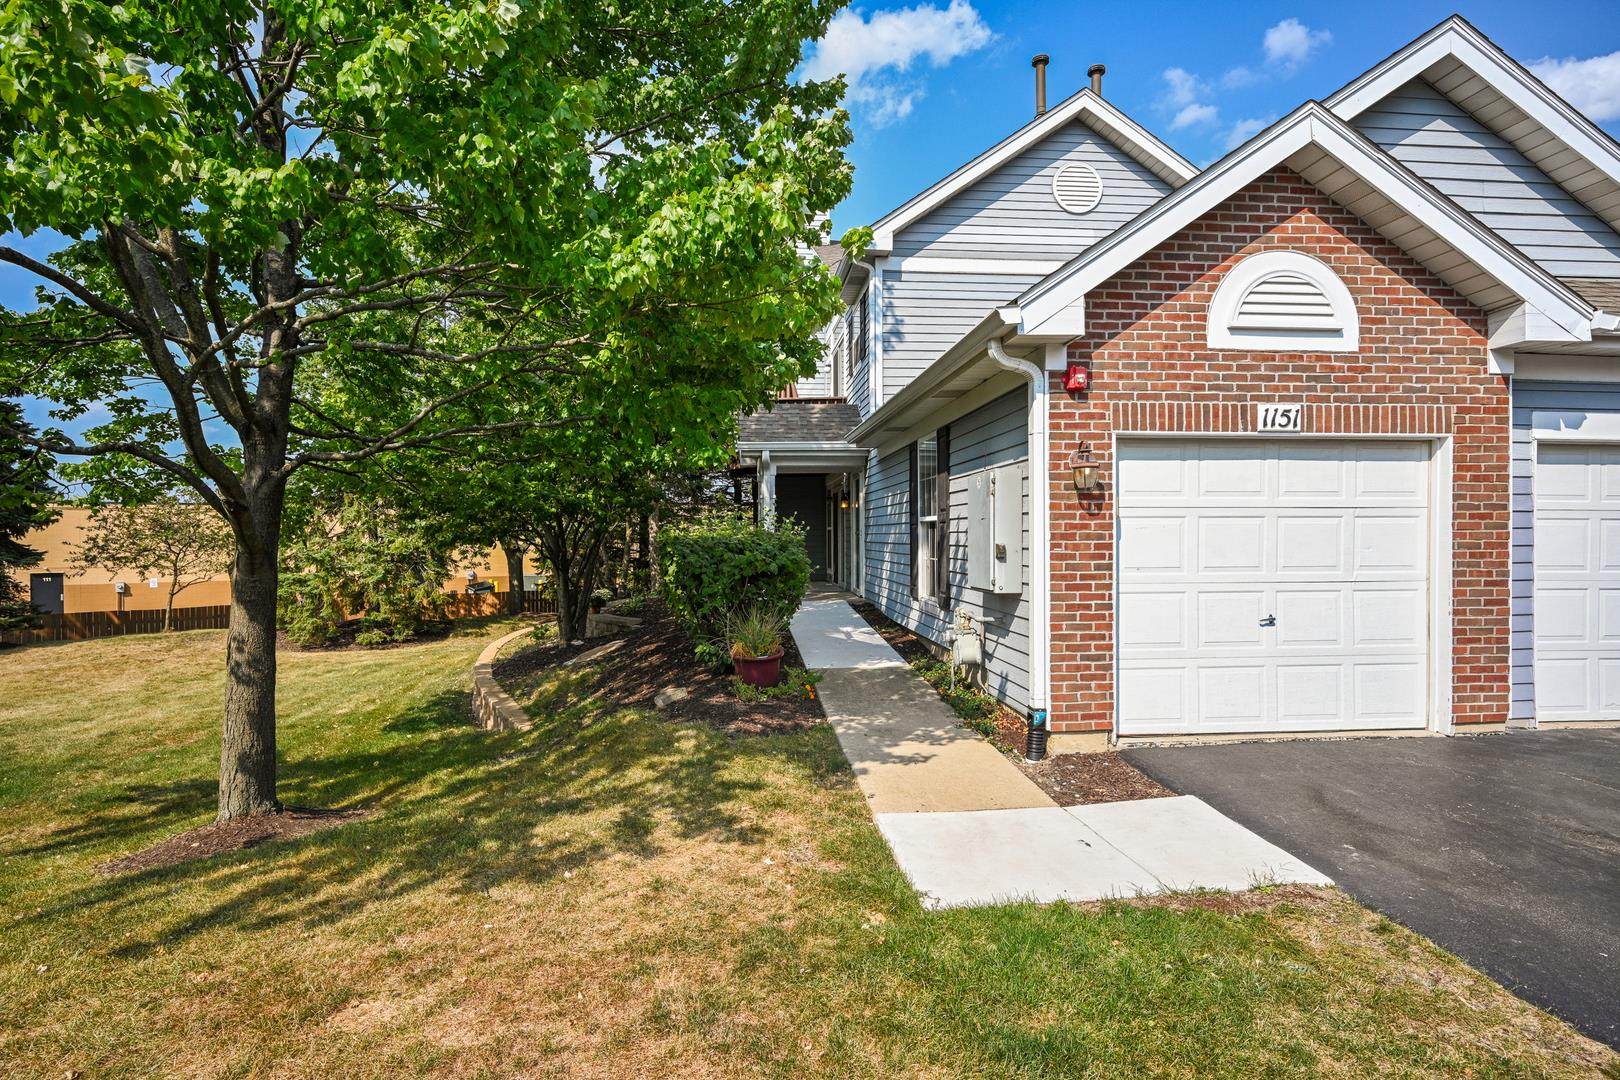 1151 Bristol Court, Glendale Heights, IL 60139 - #: 10892347